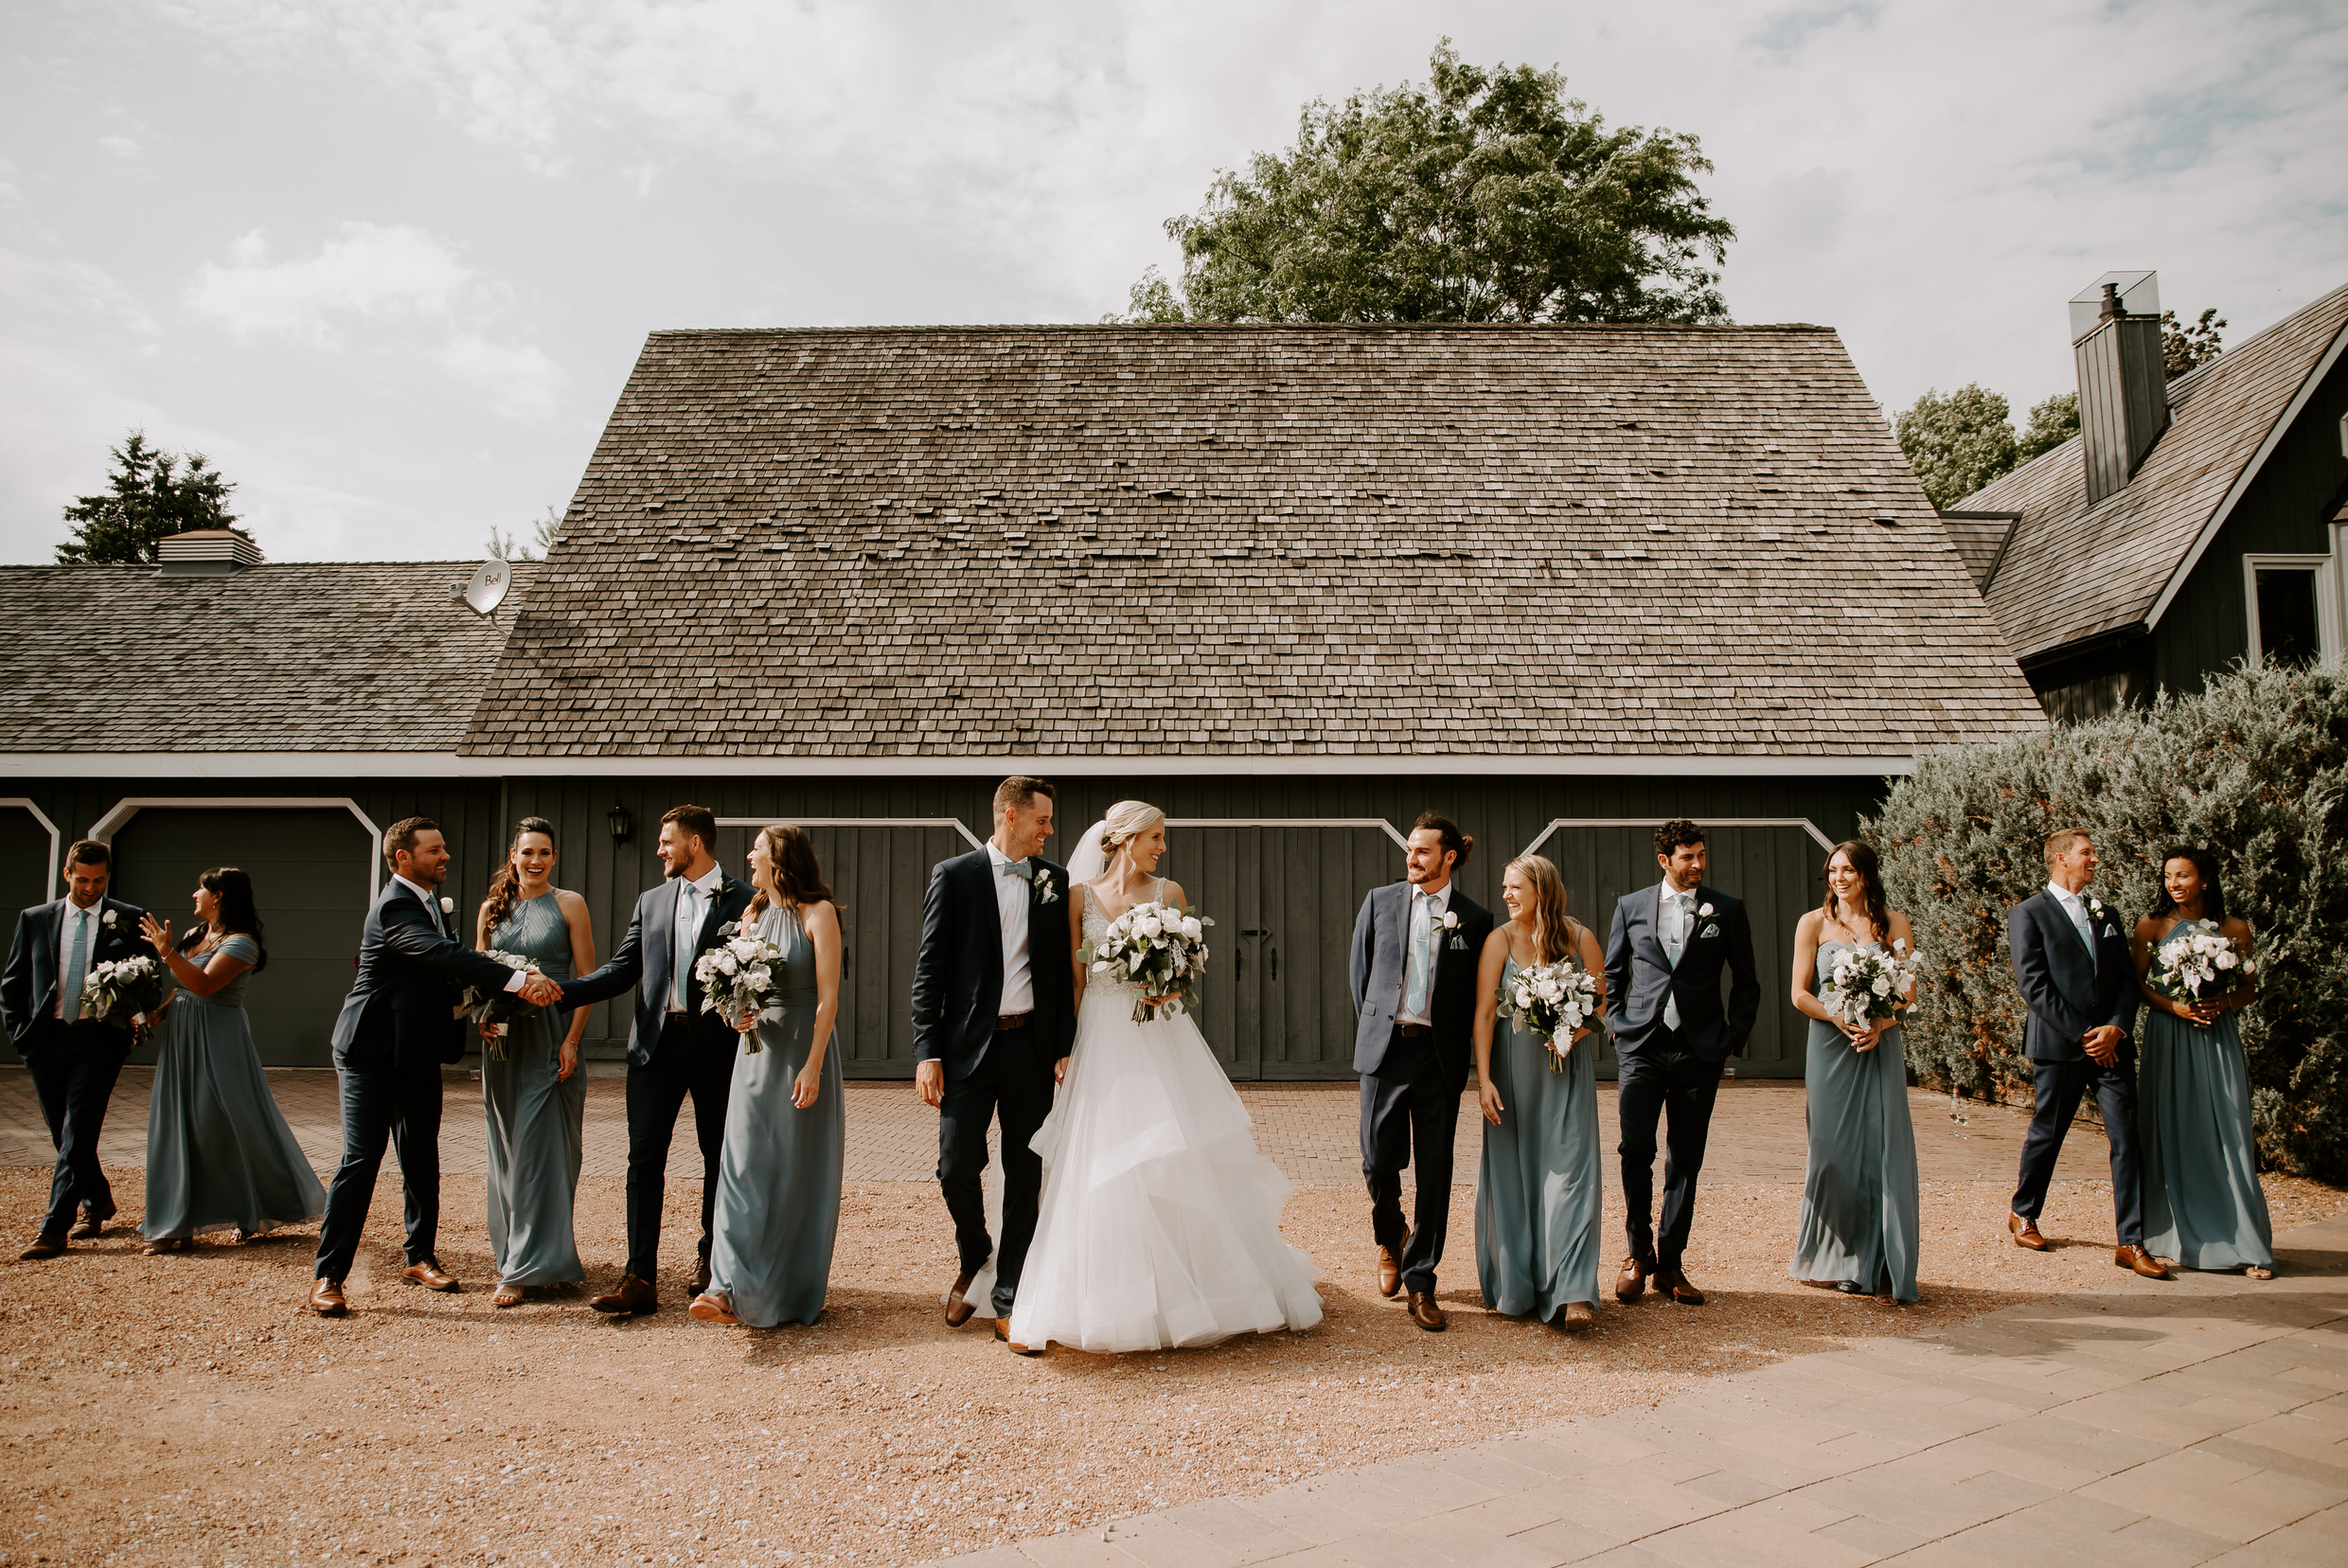 Belcroft Estates Wedding - wedding party barn portraits